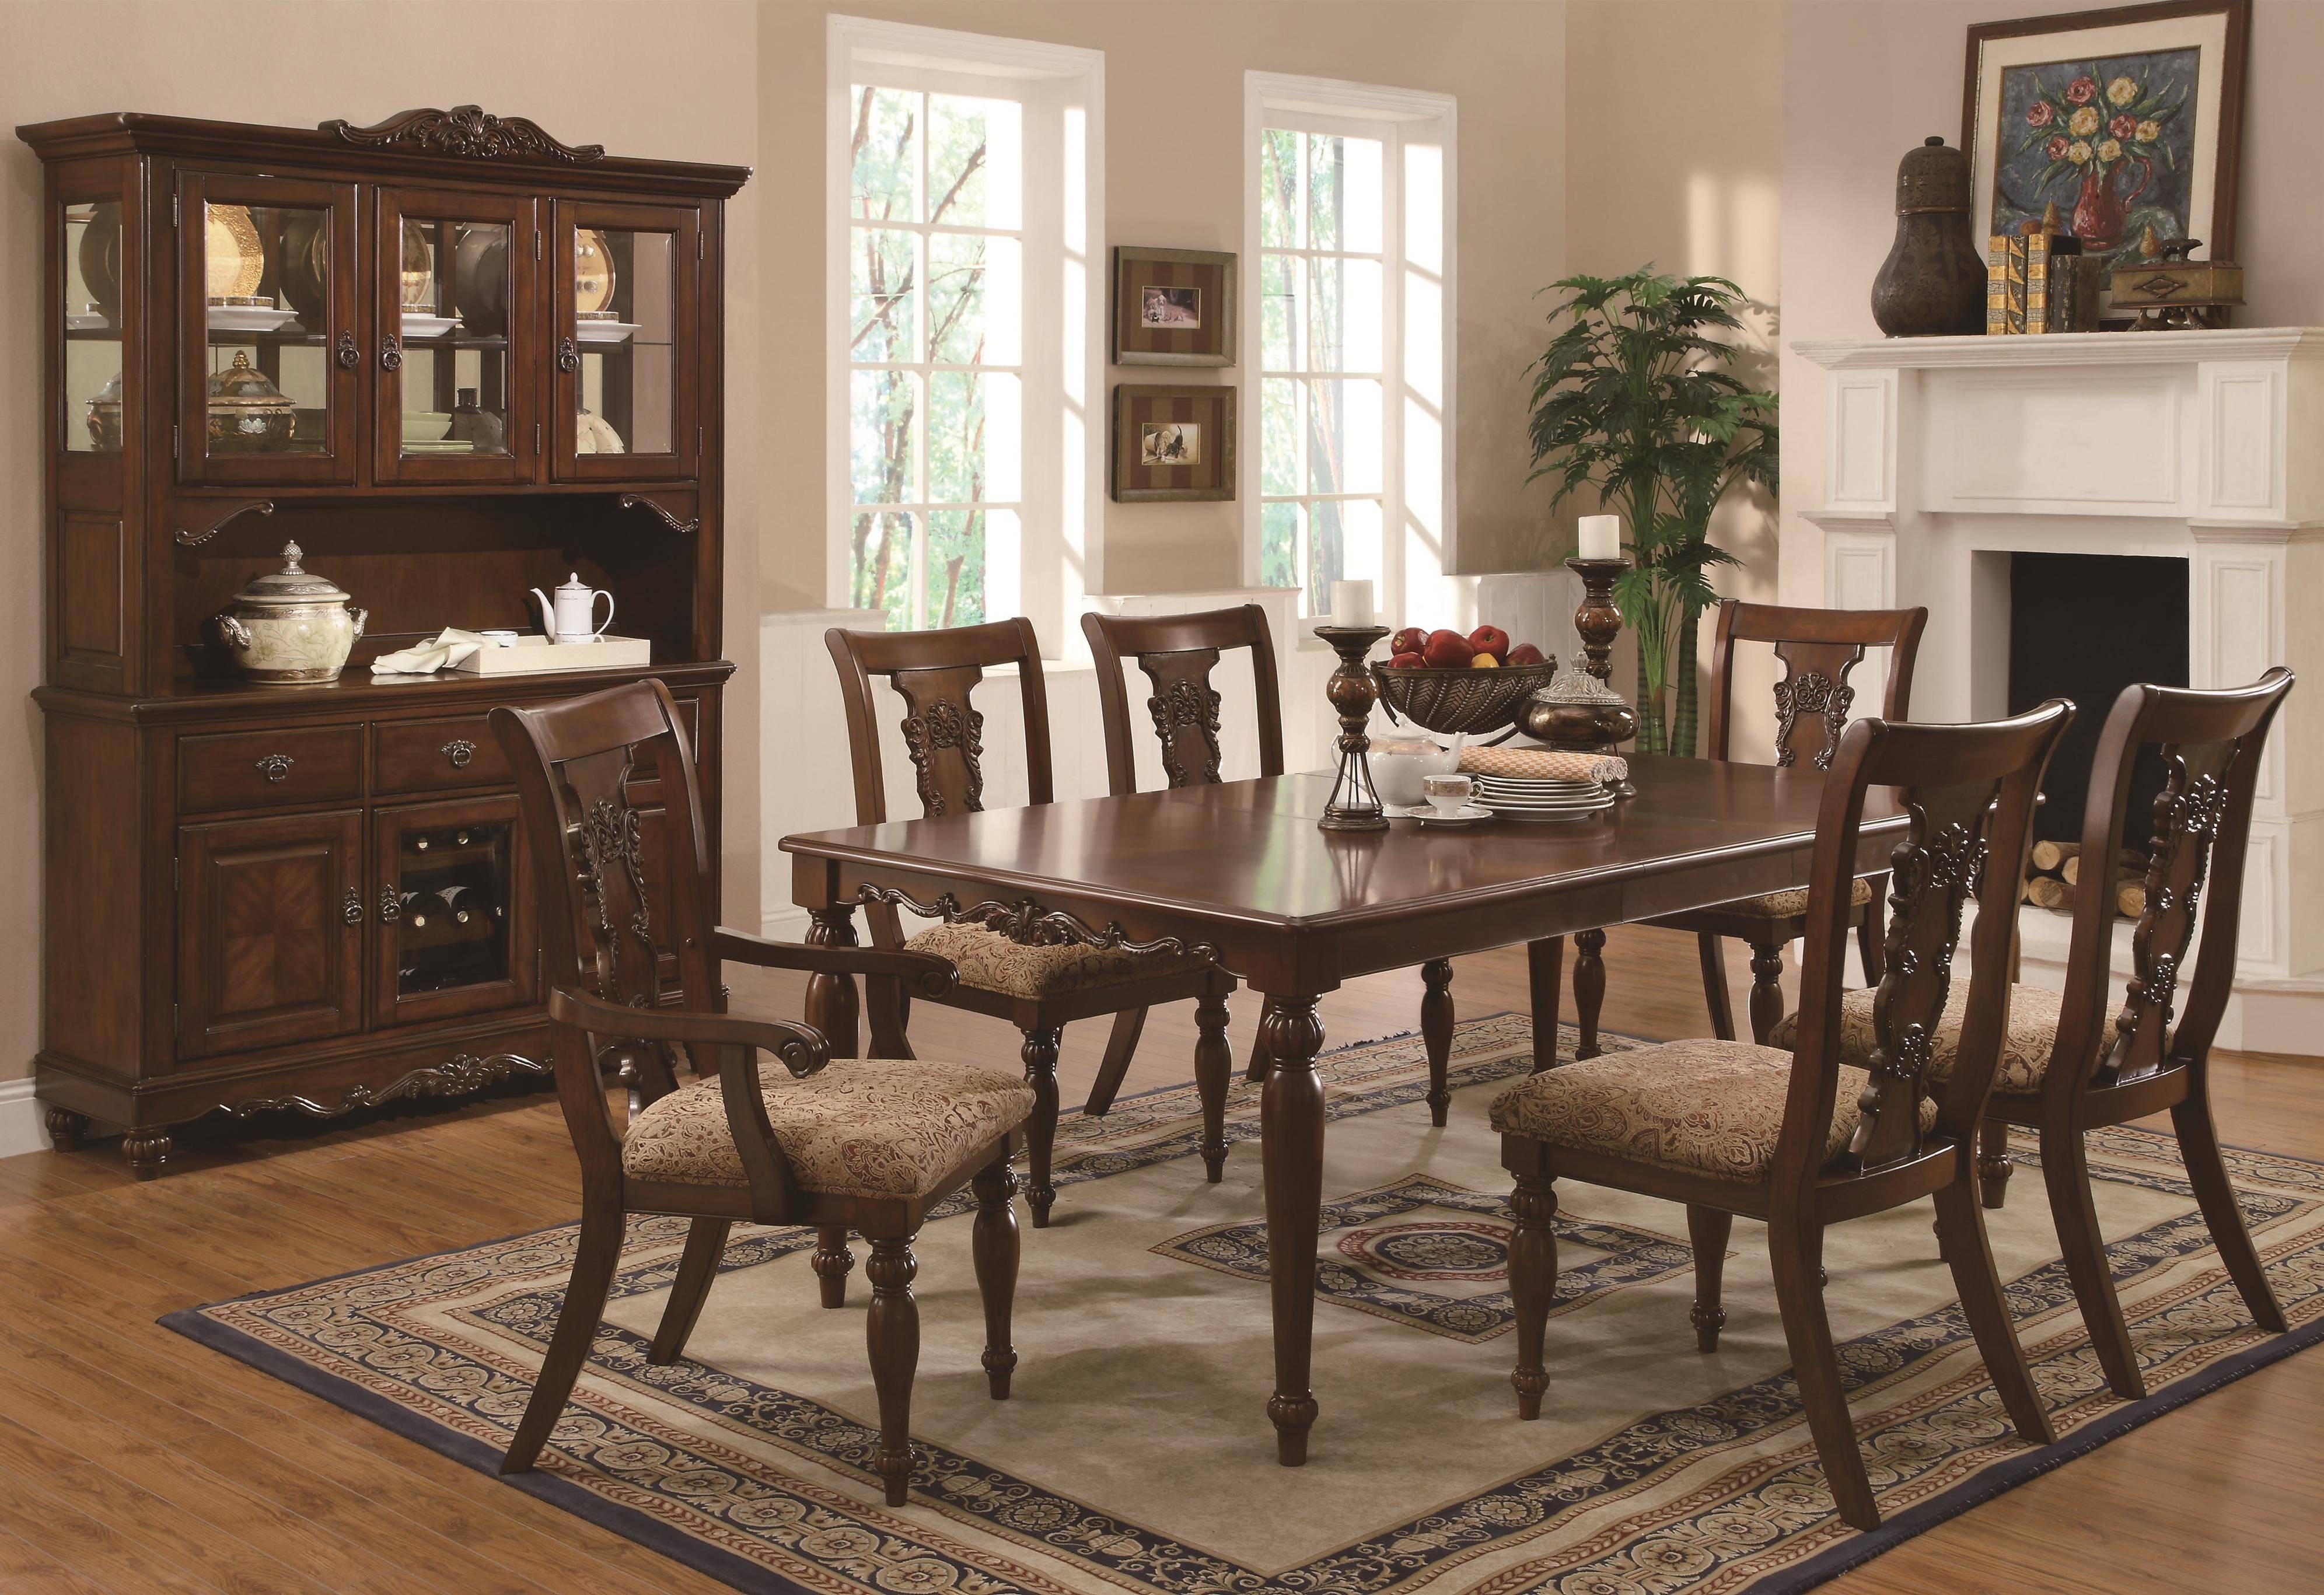 Traditional Dining Room Design Idea